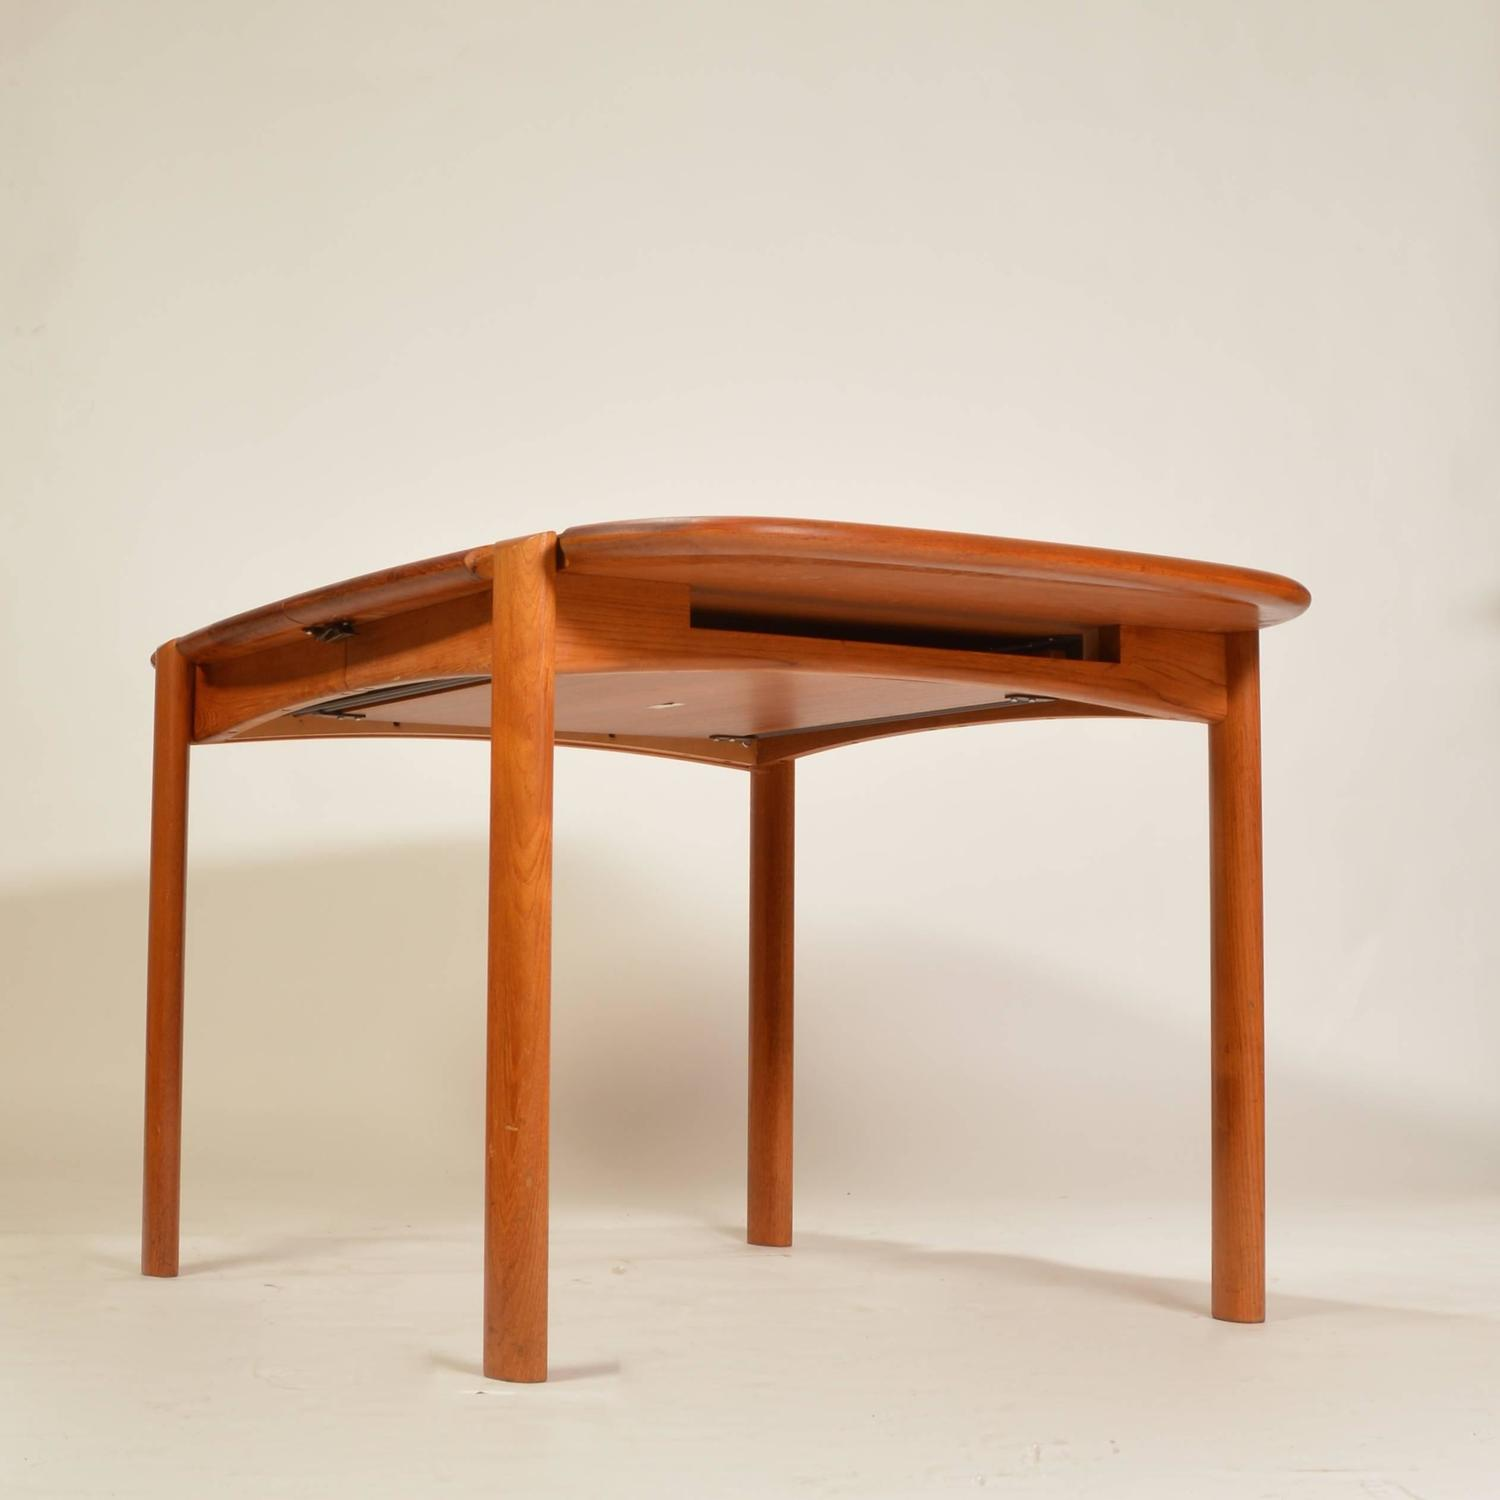 Solid Teak Danish Modern Dining Table With Two Extension